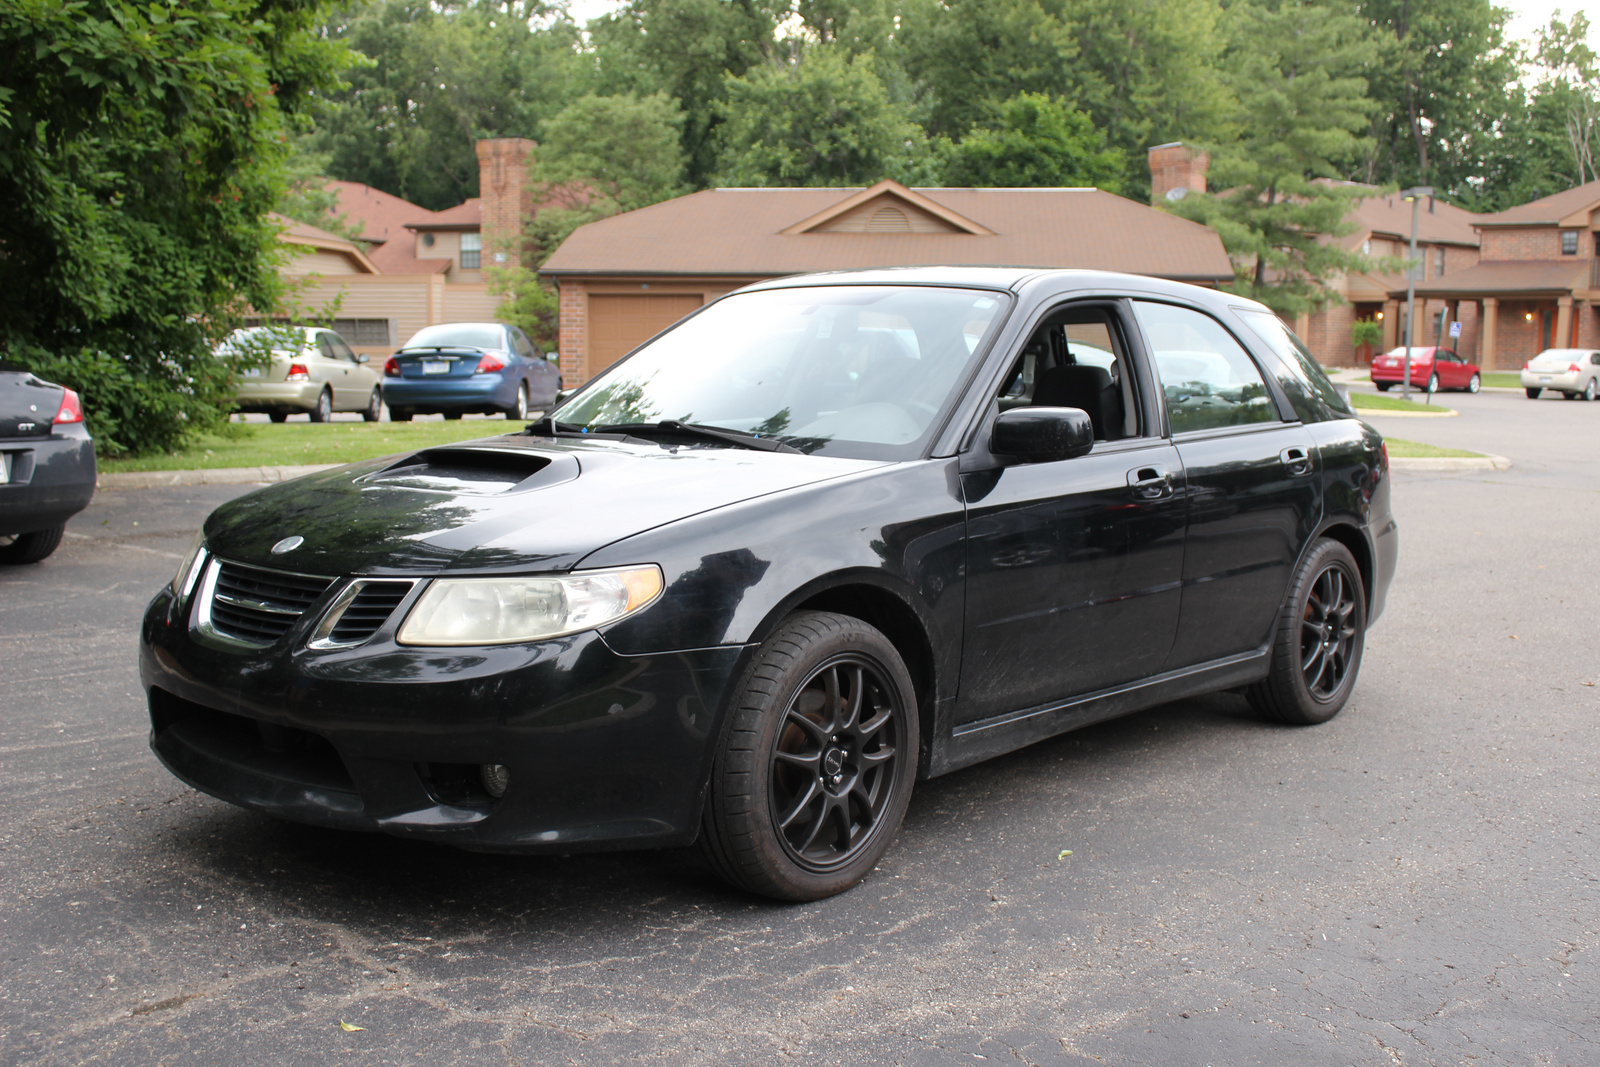 Picture of 2005 Saab 9-2X 4 Dr Aero Turbo AWD Wagon